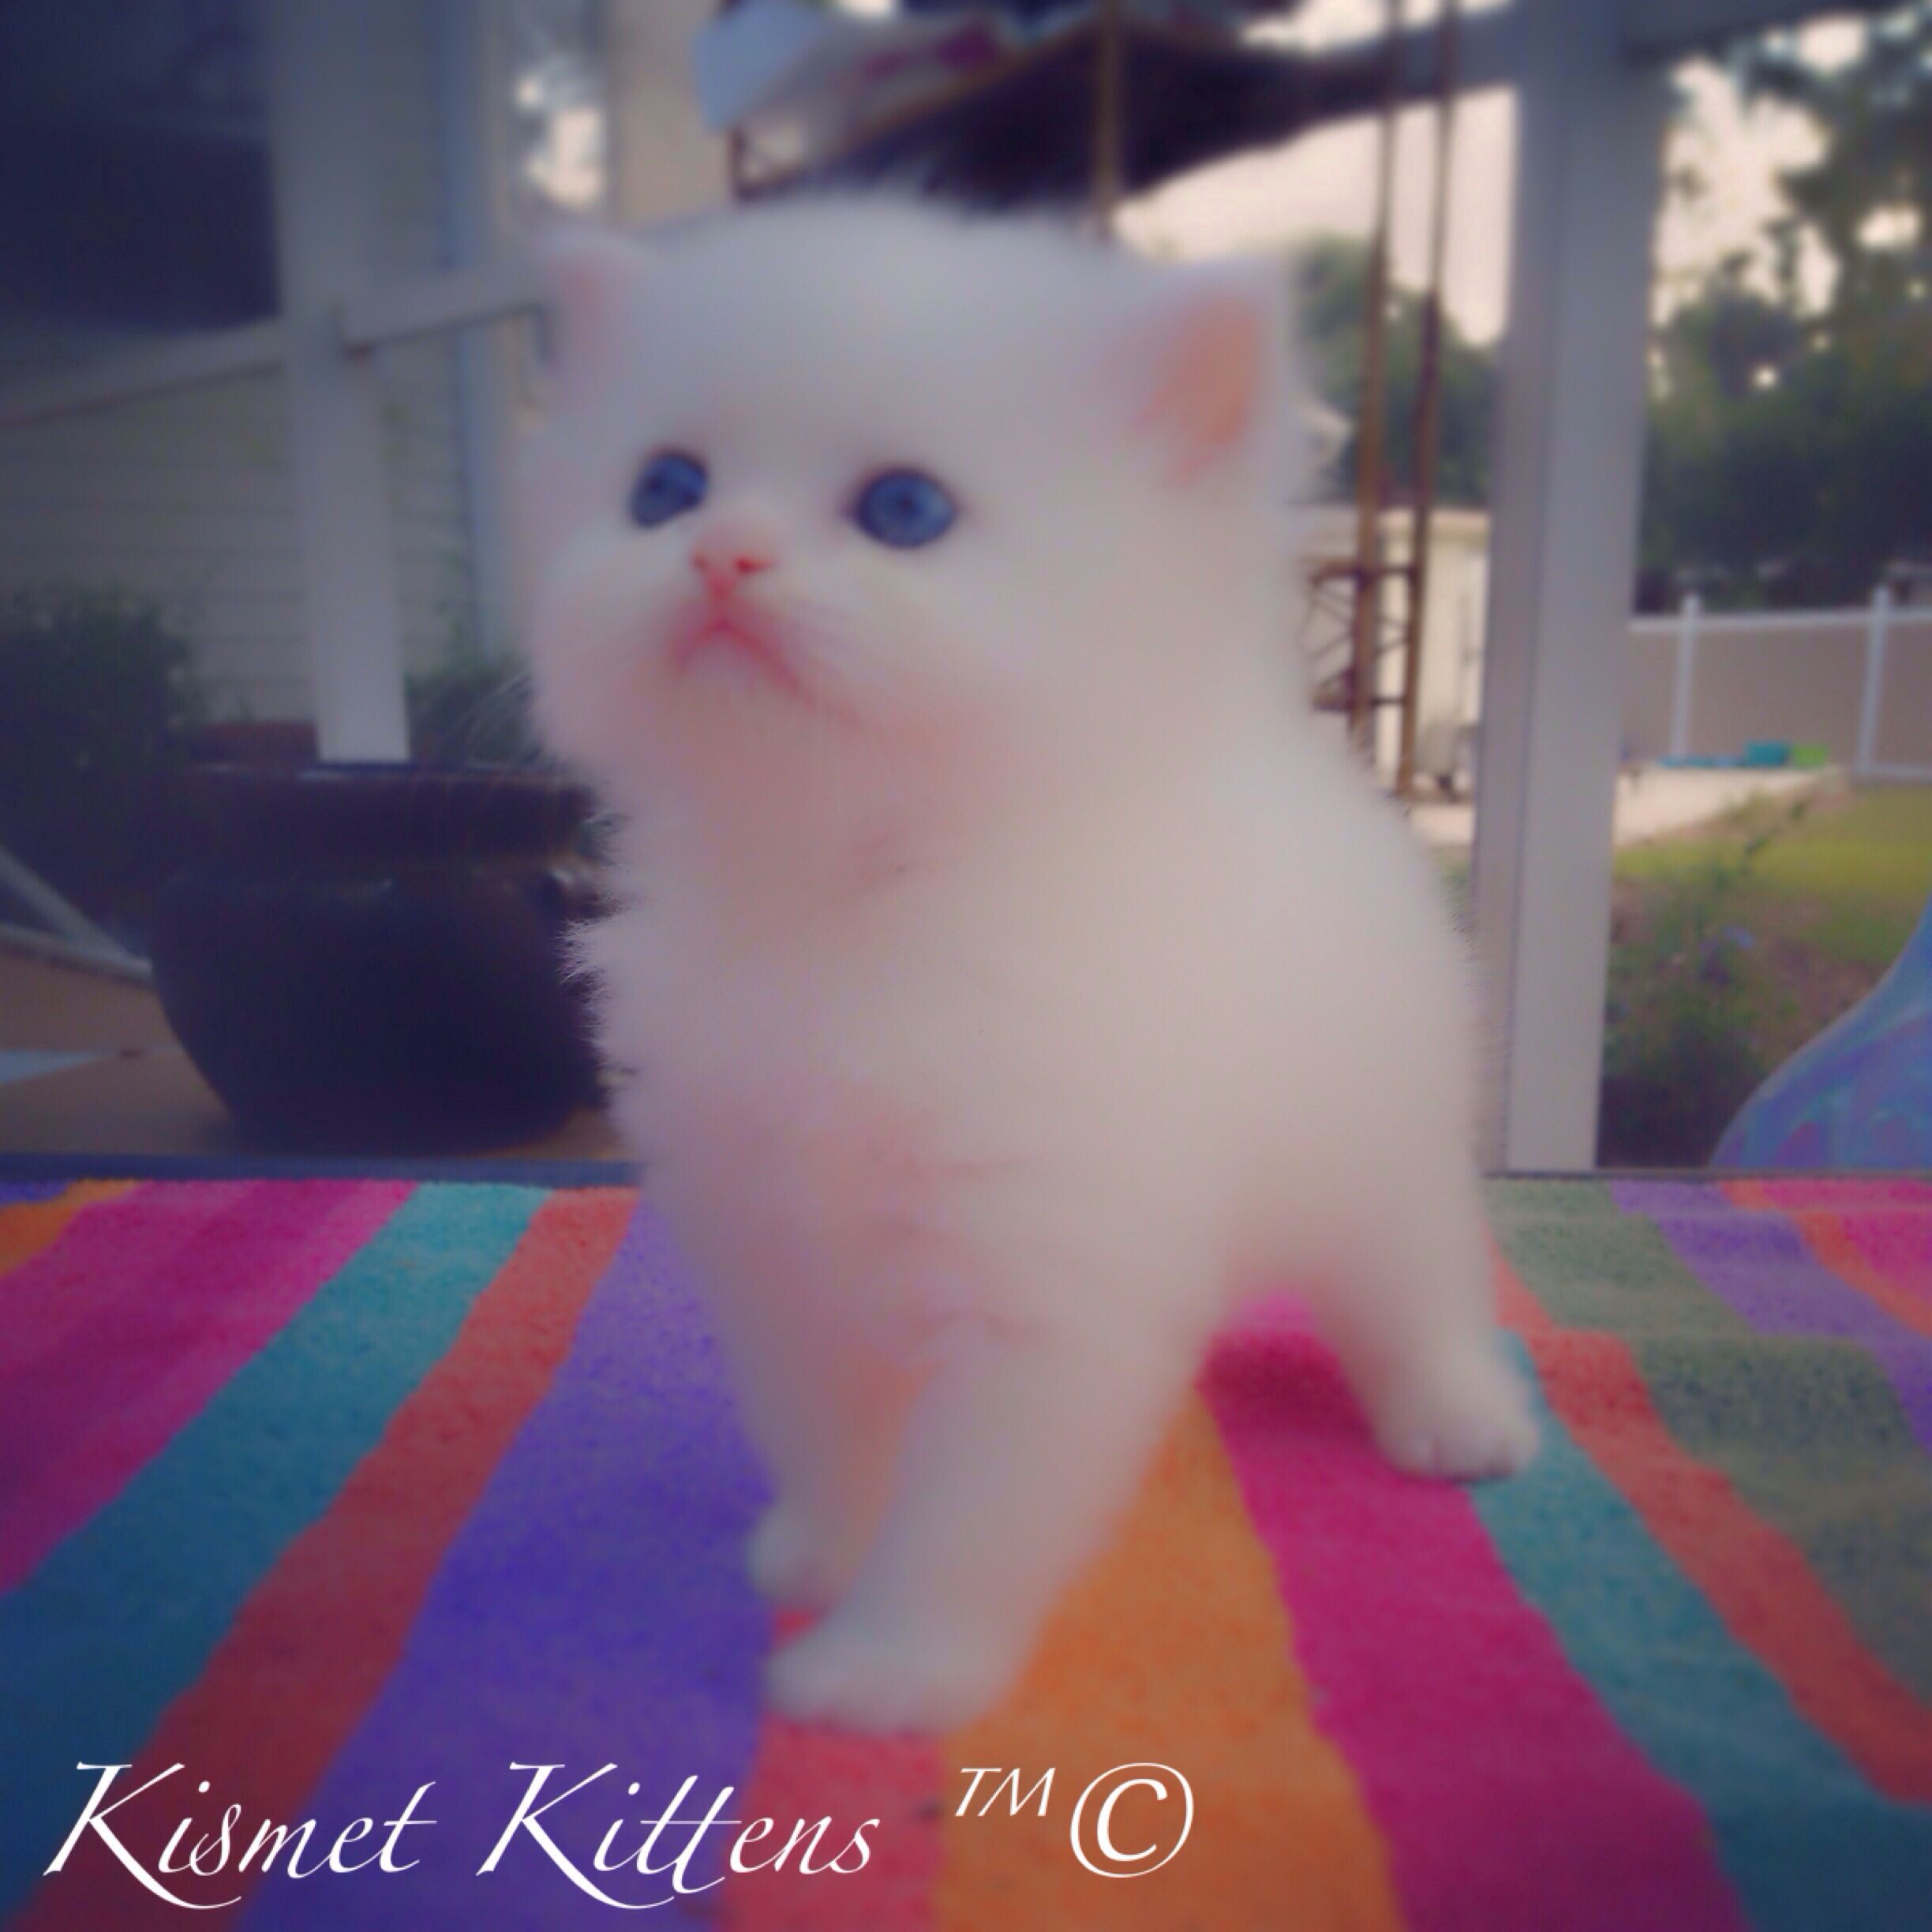 Pin By John Expert On Teacup Persian Kittens For Sale White Persian Kittens Persian Kittens Cat With Blue Eyes